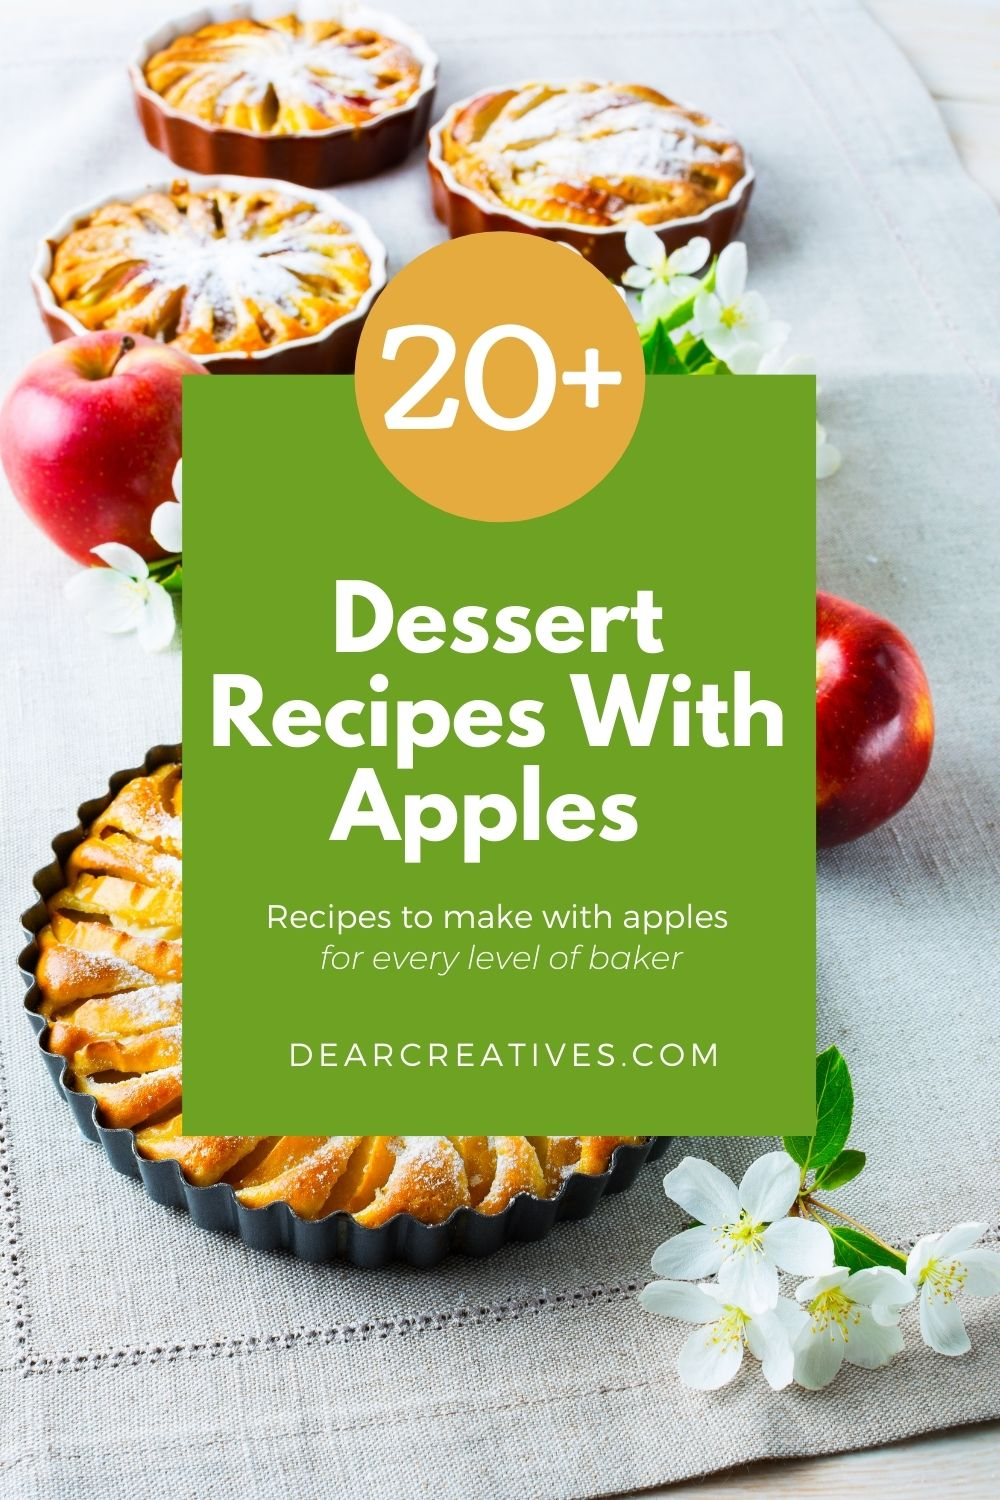 20+ Dessert Recipes With Apples You Gotta Make!